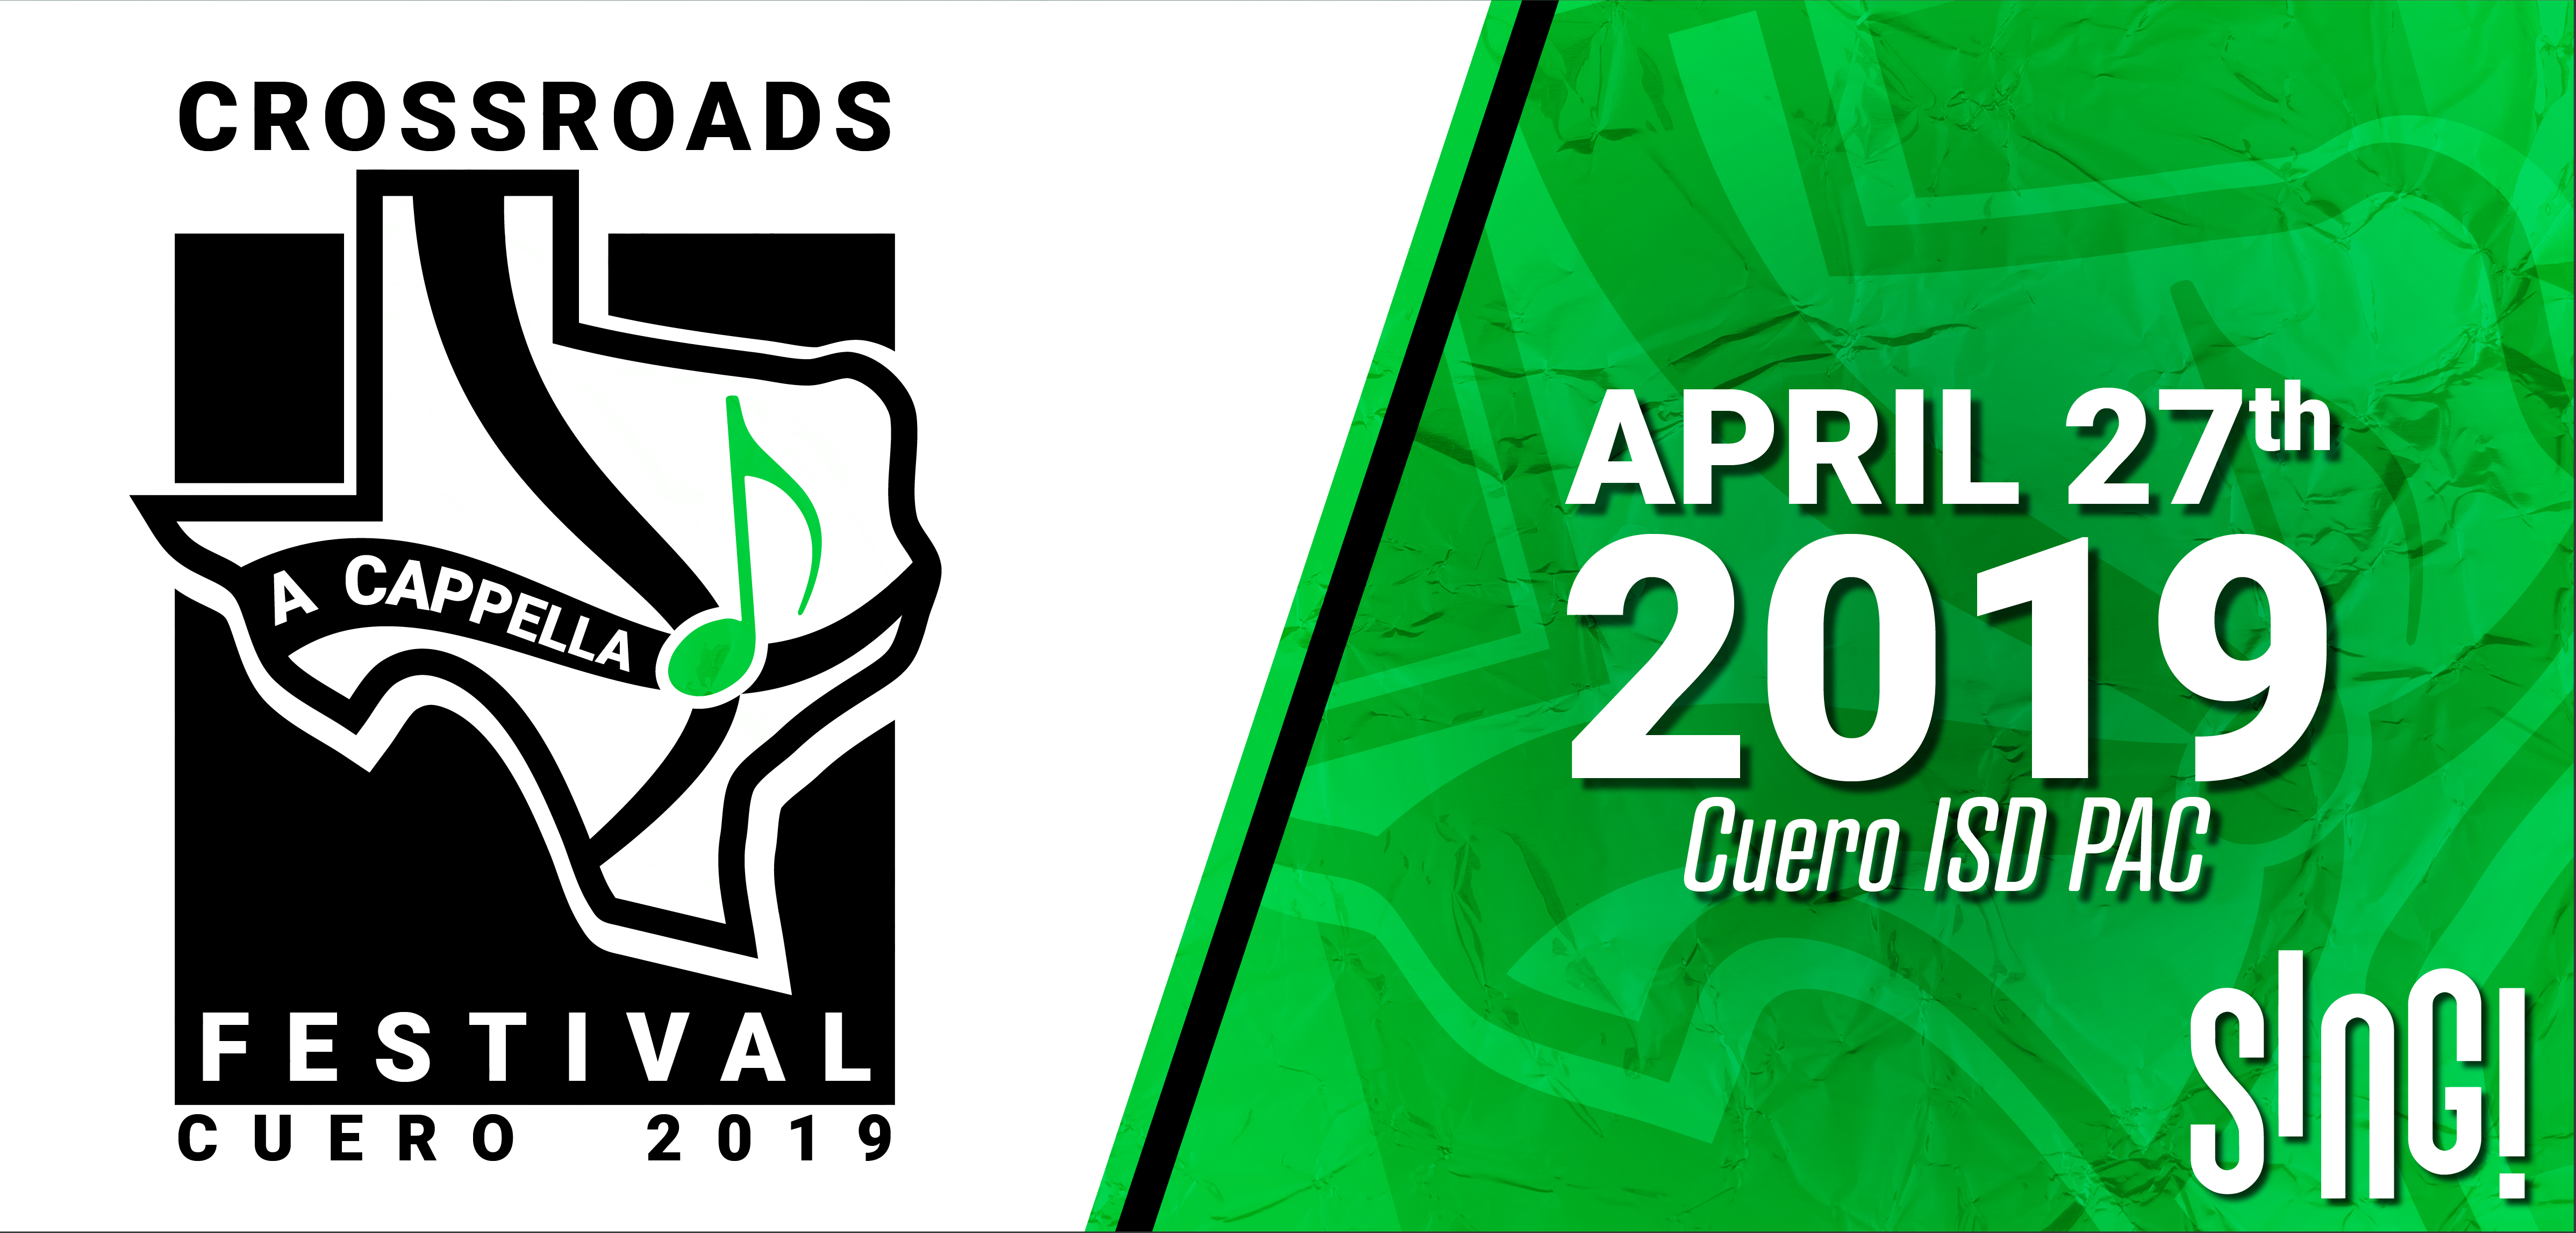 Crossroads A Cappella Festival, April 27, 2019